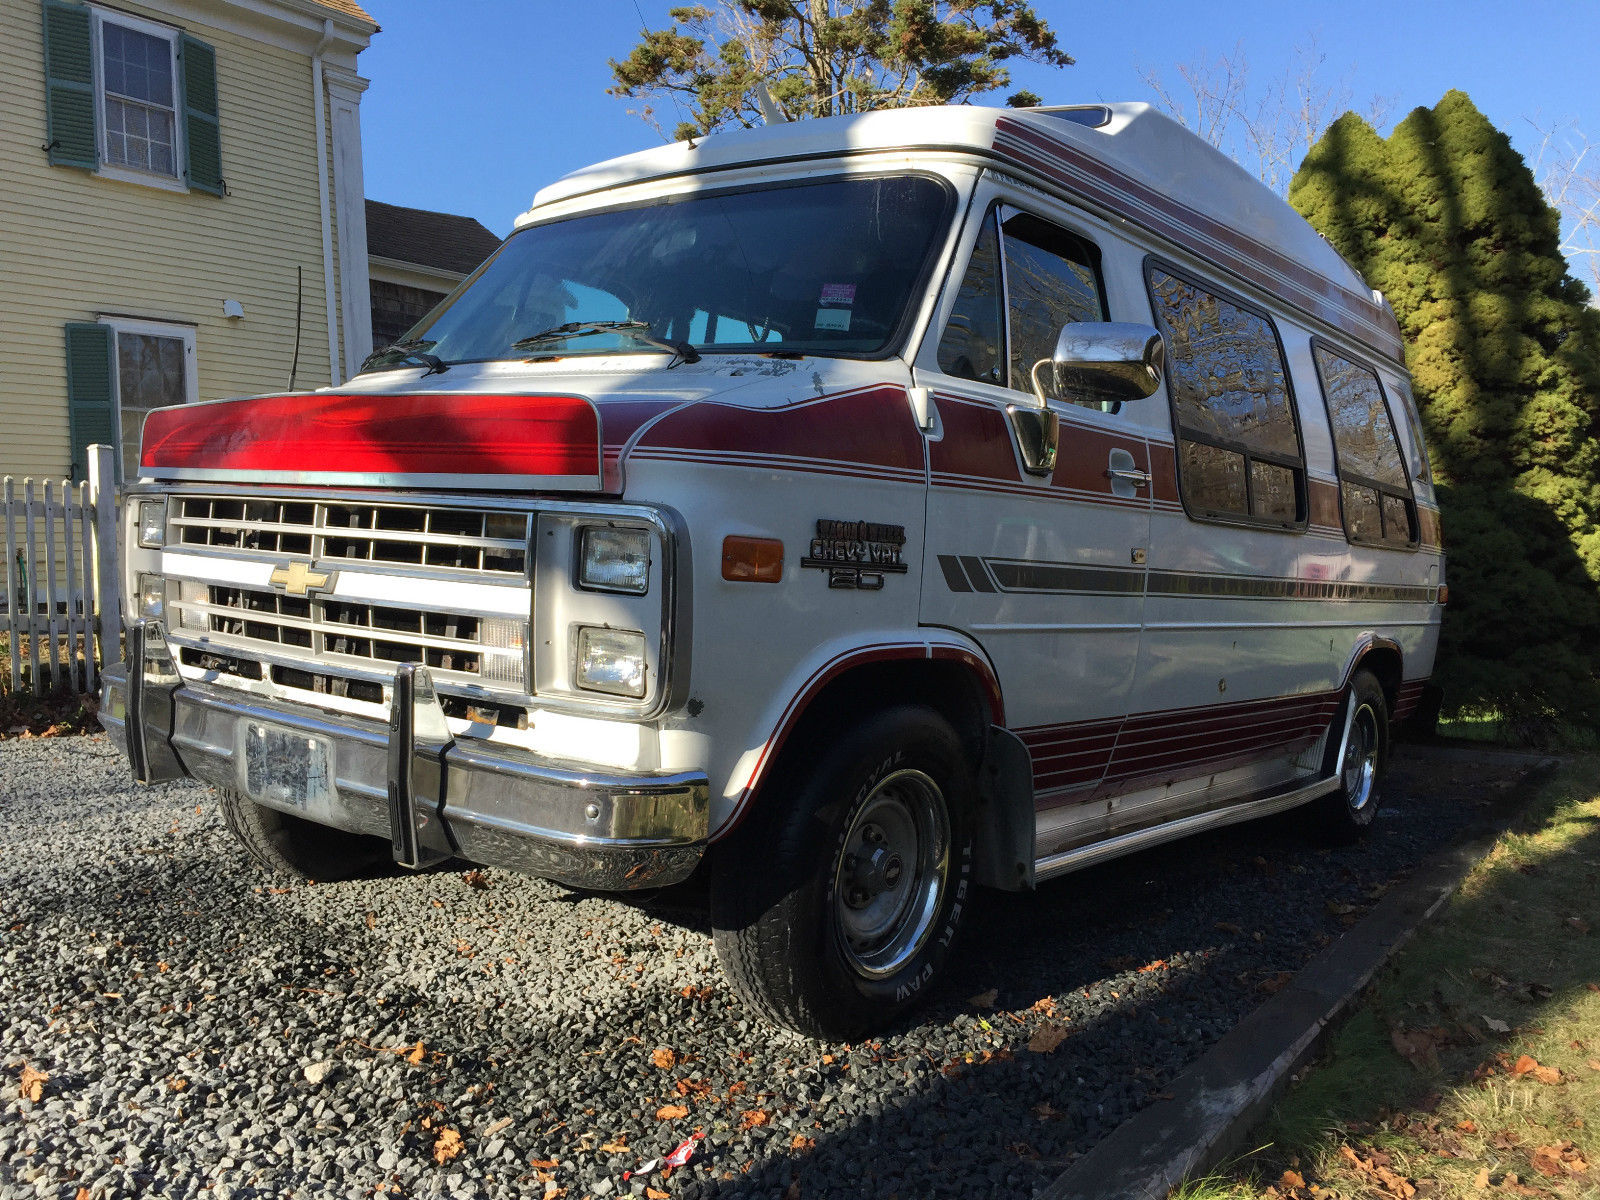 Under Bed Storage With Wheels >> 1989 Chevrolet G20 Wagon Wheels Custom Conversion Van for sale in Barnstable, Massachusetts ...